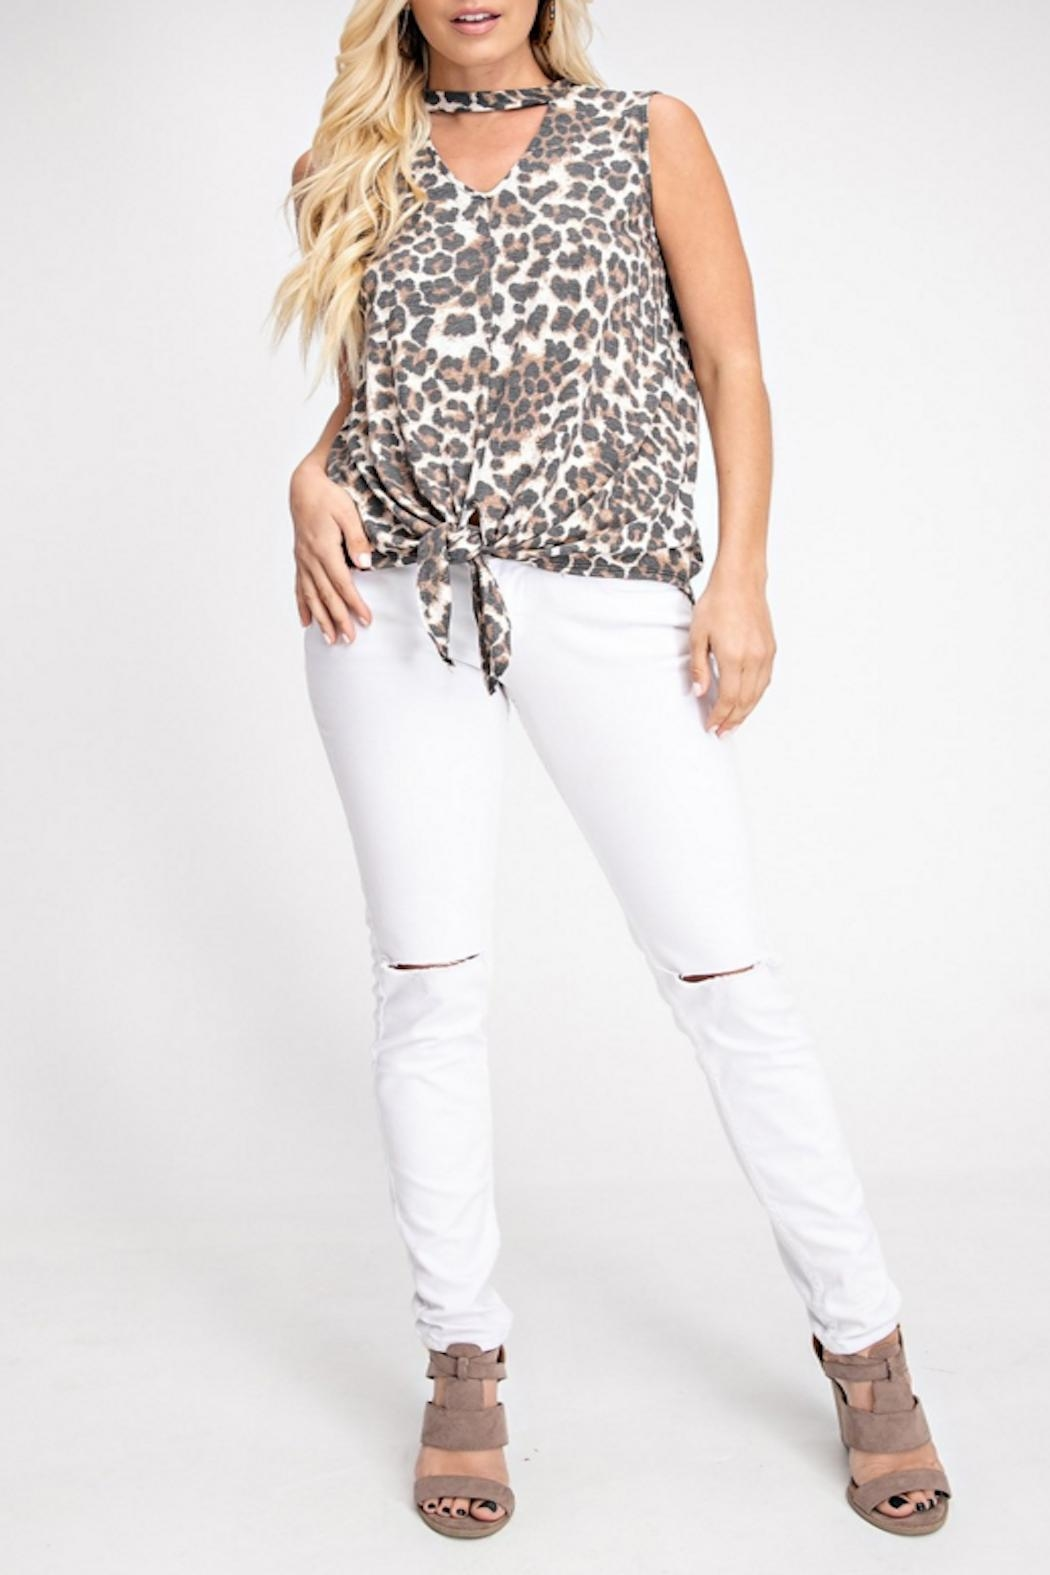 143 Story Ivory Leopard Top - Main Image